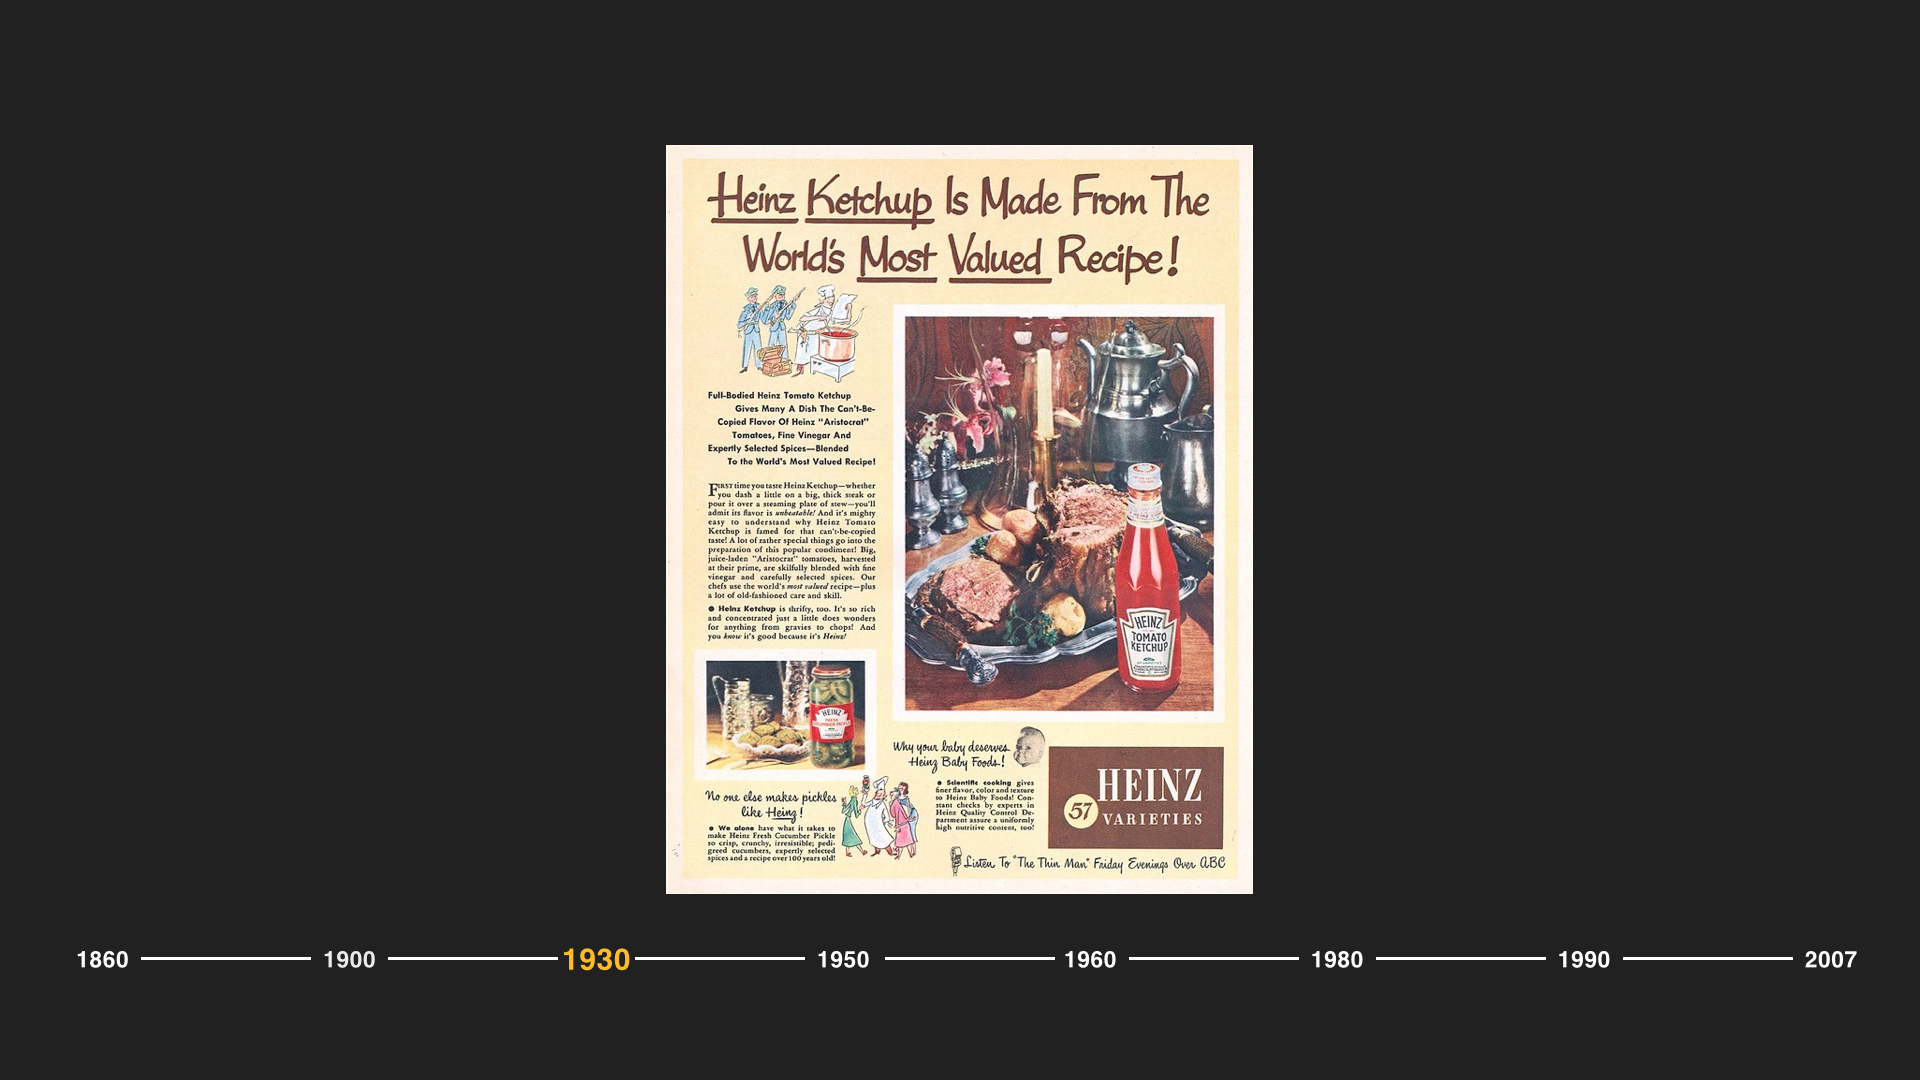 And as the years progressed, Heinz Ketchup would prove to be a great equalizer, a Big Food brand with a special ability to provide something for everyone.  A burger and fries topped with ketchup was a democratic and delicious meal that satisfied the American palette. The Heinz brand understood the American people and their families.